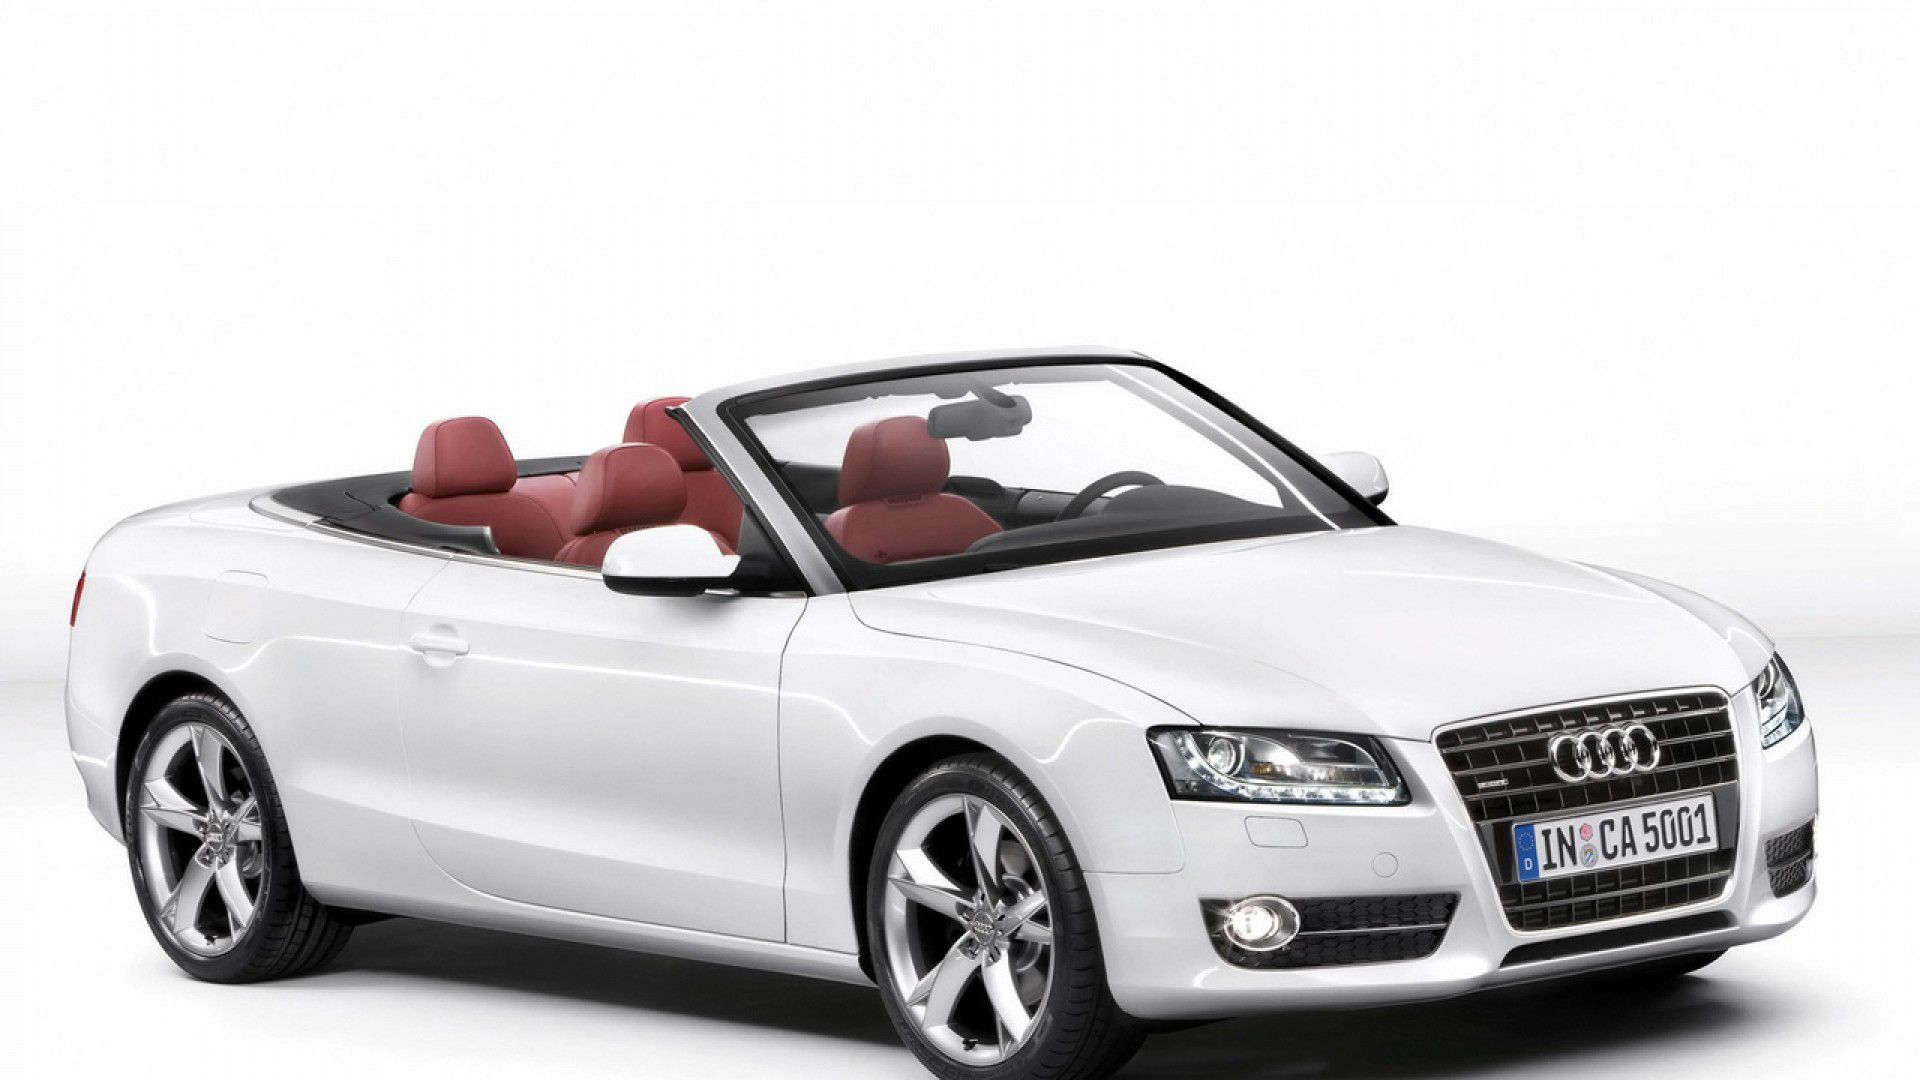 Audi A4 Cabriolet (2005 to 2009)